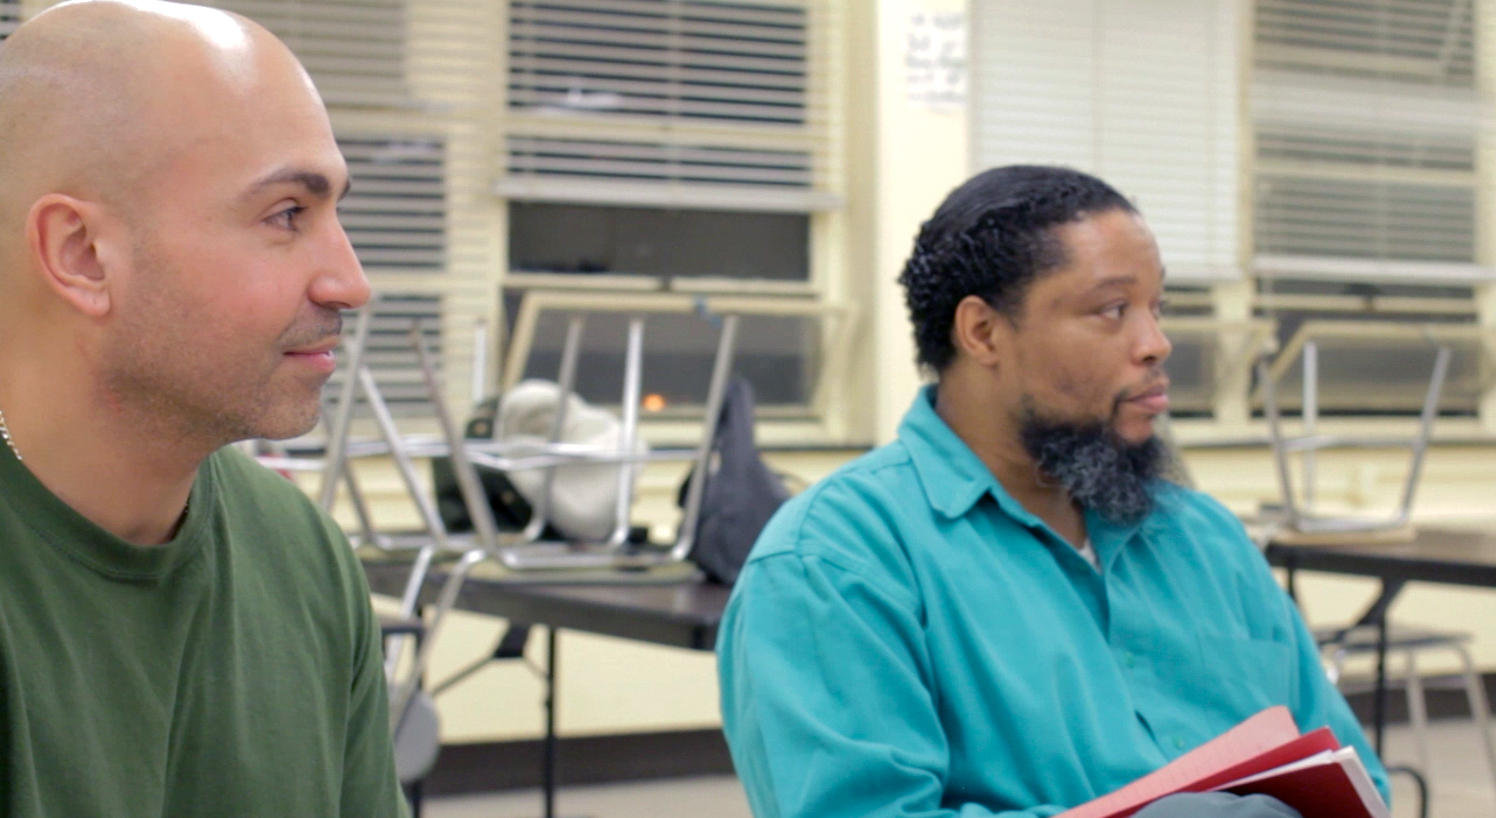 Efraim Diaz and Kenneth Brown listen to a discussion of a piece for performance.